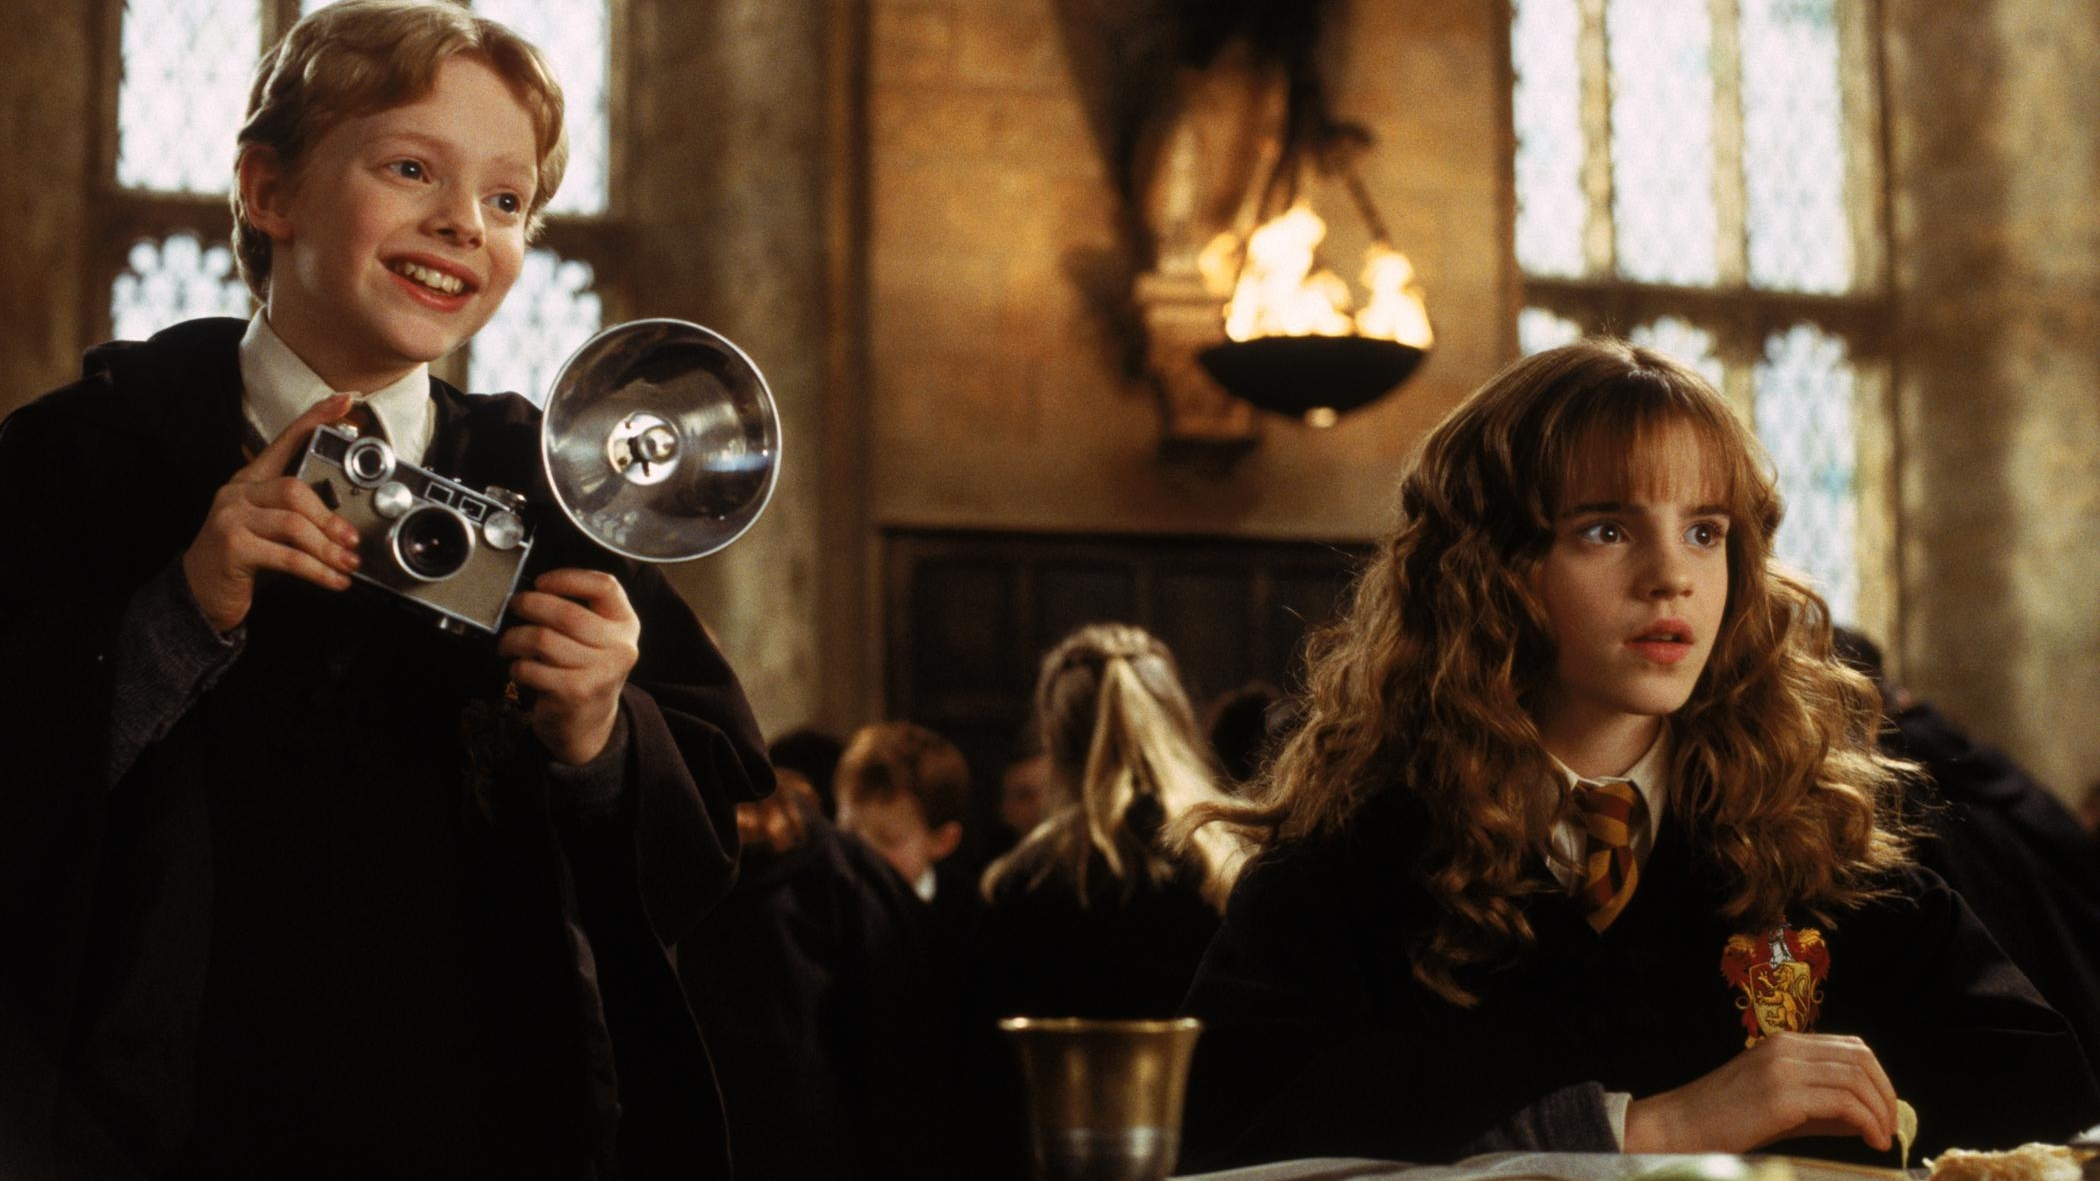 #70) Harry Potter and the Chamber of Secrets - (2002 - dir. Chris Columbus)